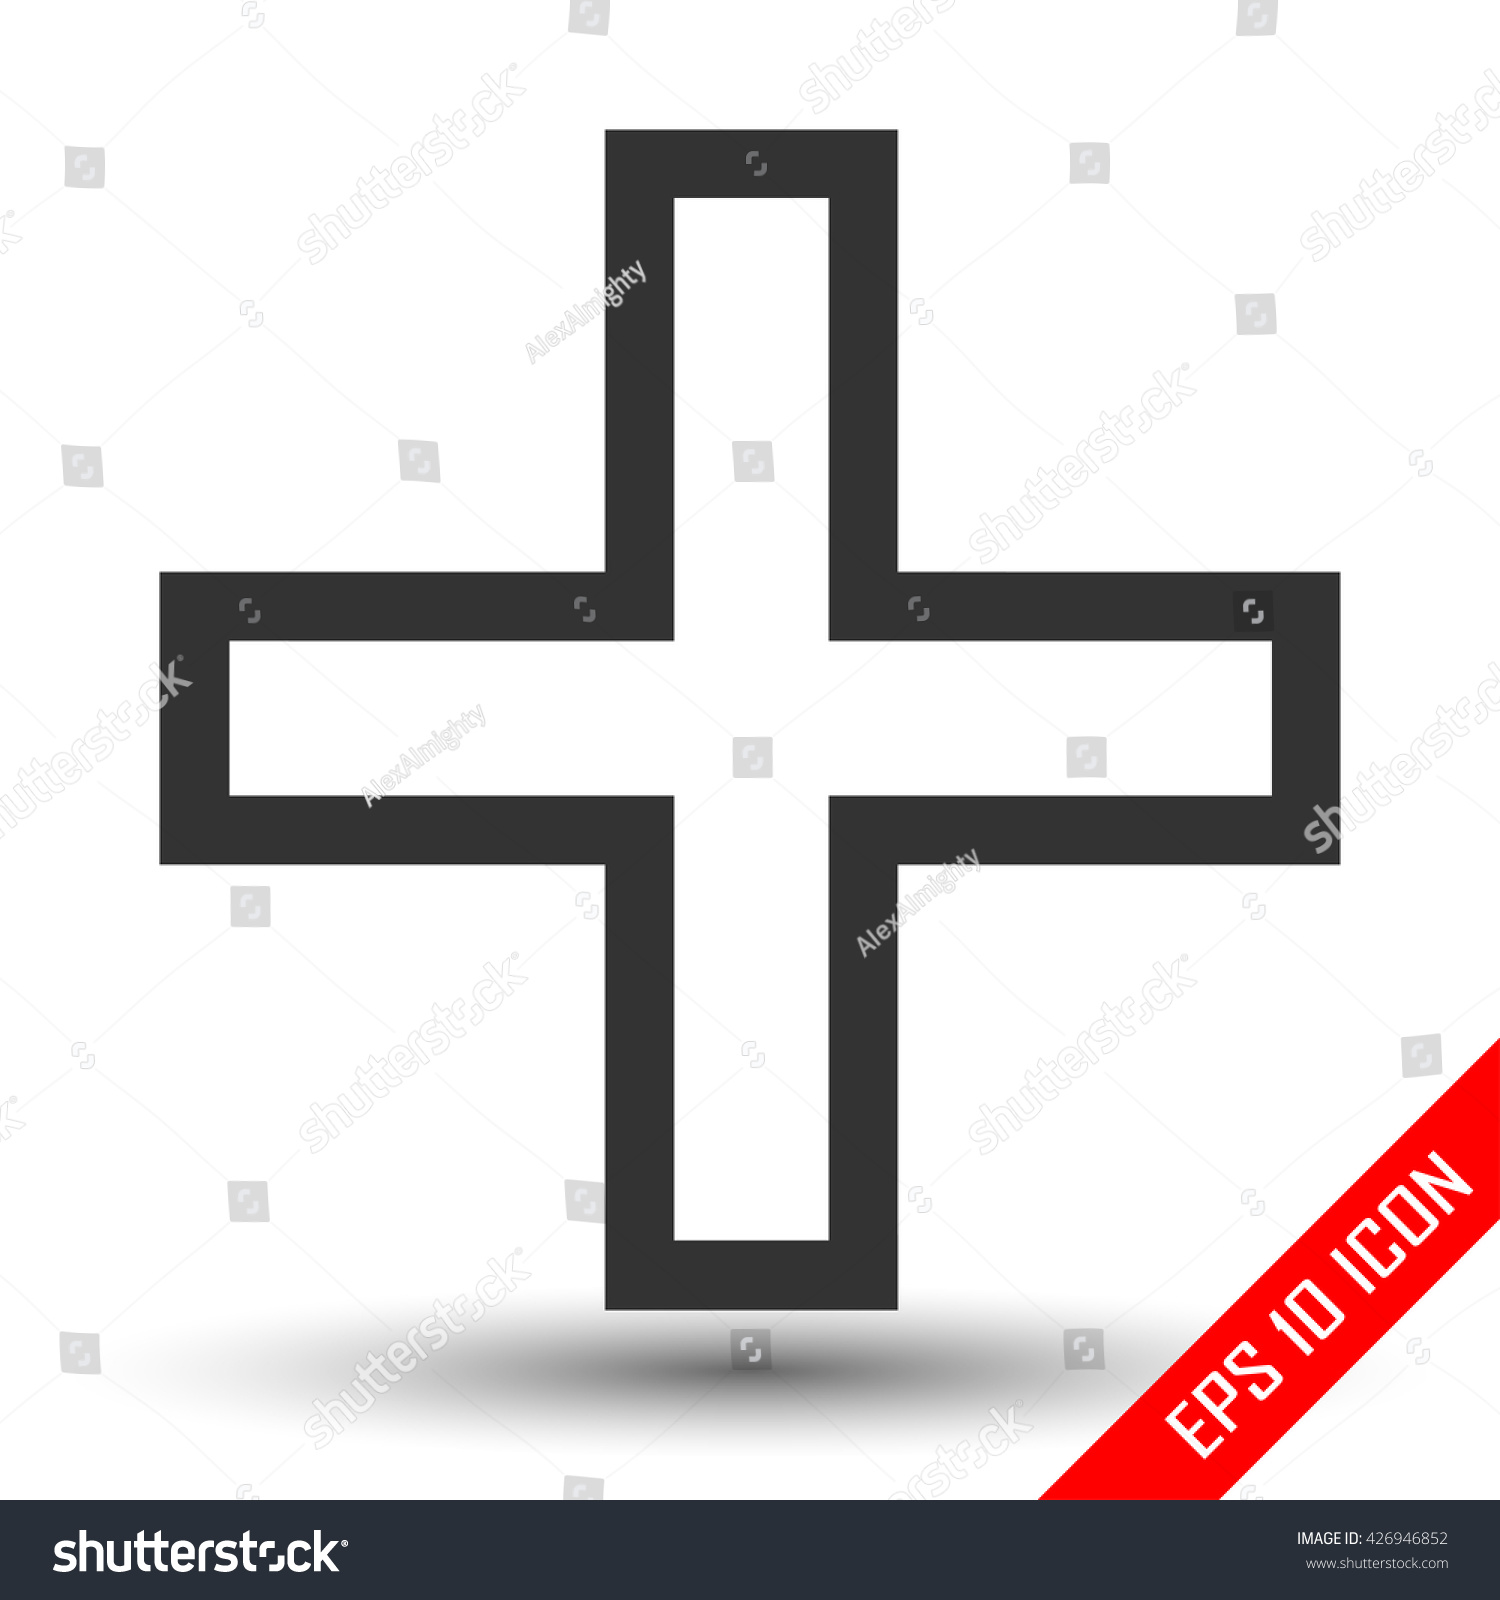 Plus sign icon positive symbol isolated stock vector 426946852 plus sign icon positive symbol isolated on a white background zoom in logo biocorpaavc Choice Image